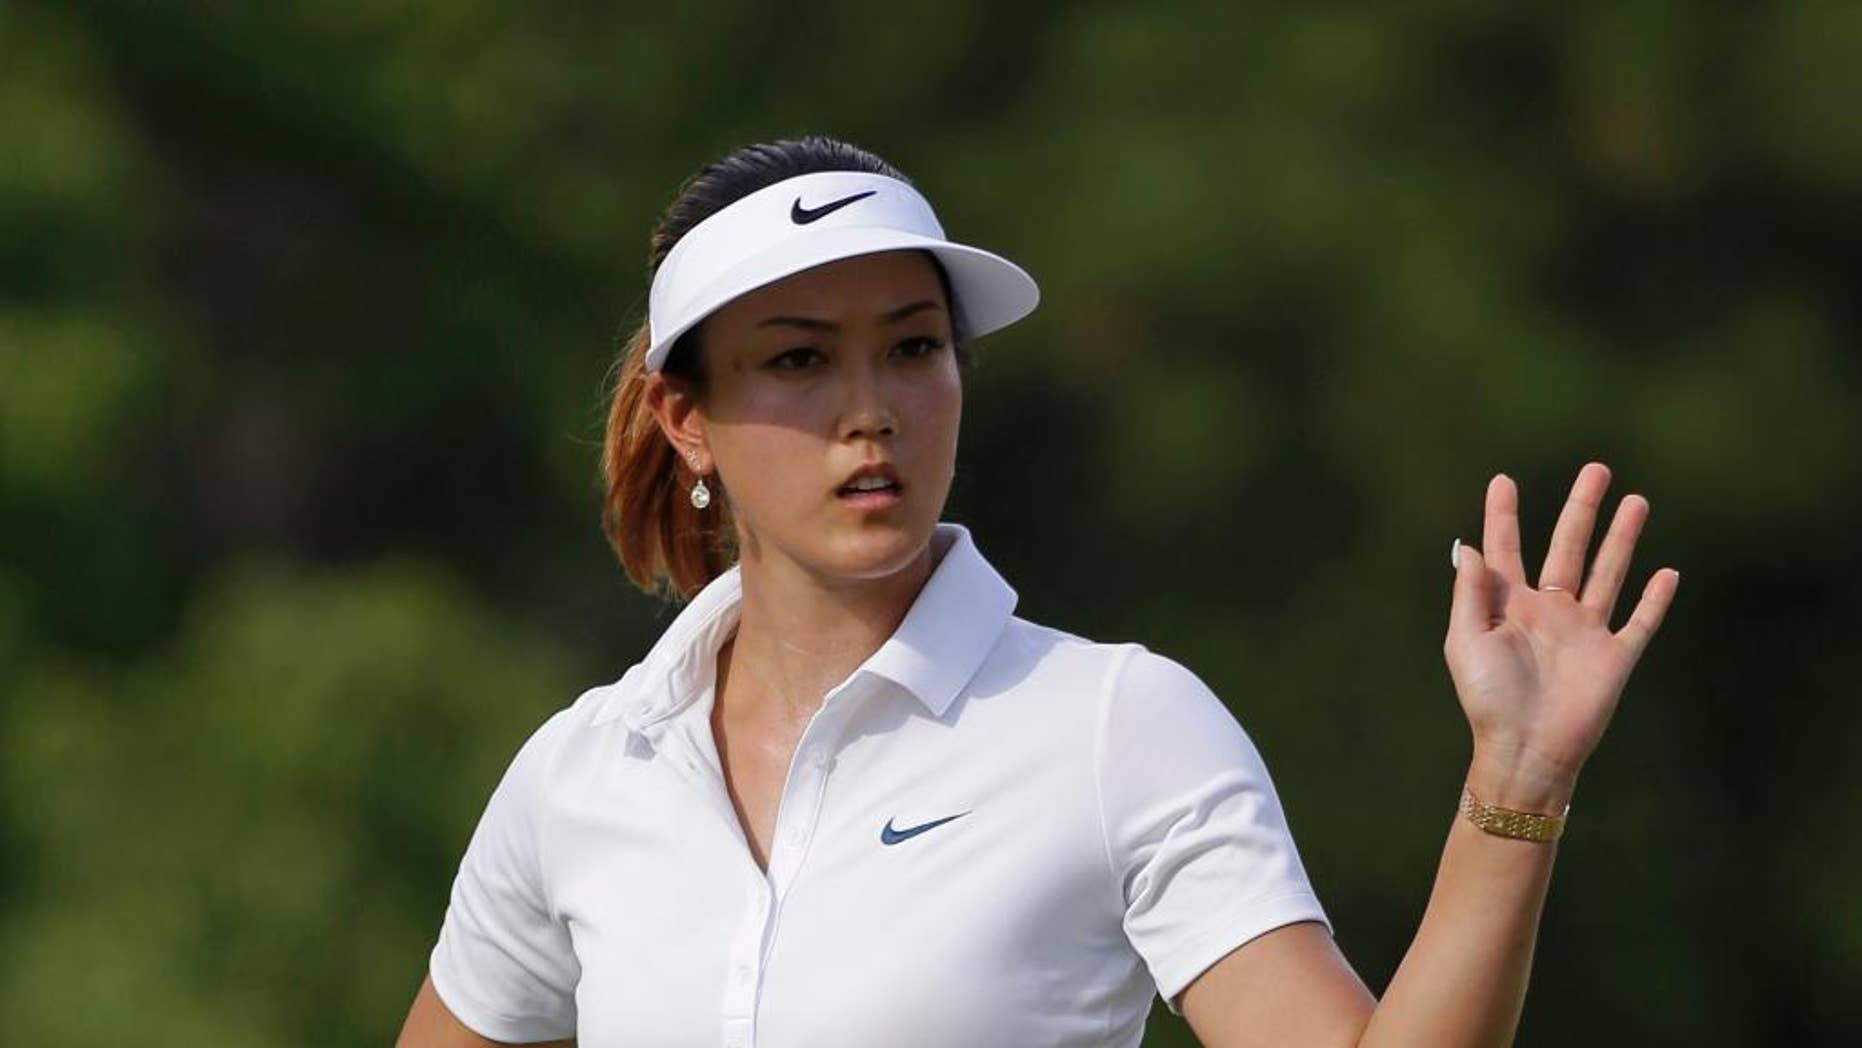 Michelle Wie waves after making a putt on the 14th hole during the first round of the LPGA U.S. Women's Open golf tournament in Pinehurst, N.C., Thursday, June 19, 2014. (AP Photo/Bob Leverone)